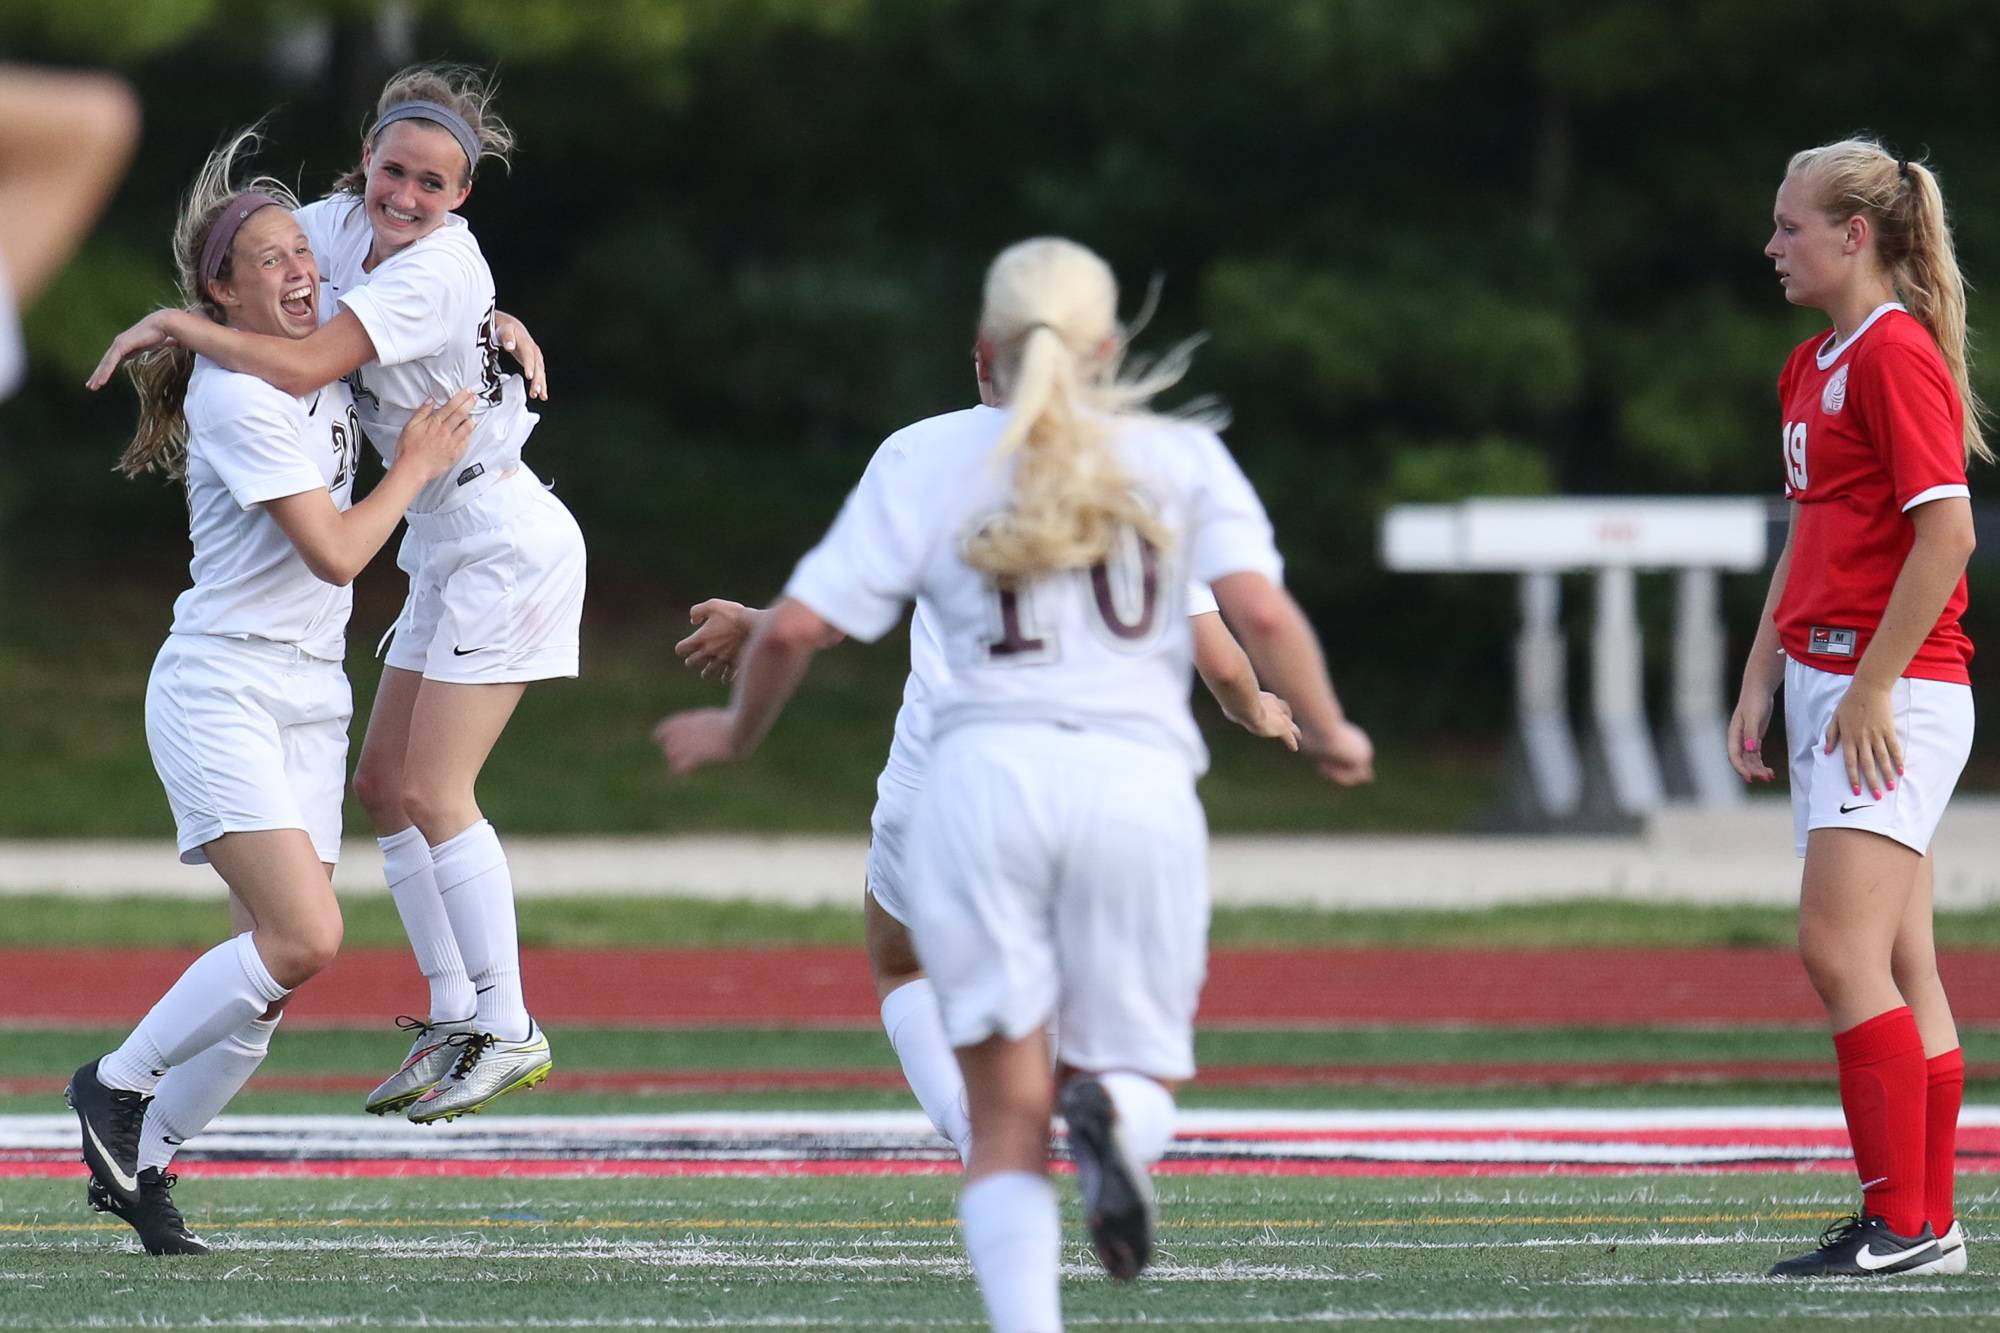 Wheaton Academy forward Gretchen Pearson (left) gives forward Sophie Lindquist (14) a hug after Sophie scores a goal in overtime against Marian Central during the girls Class 1A championship soccer game at North Central College in Naperville, IL on Saturday, May 28, 2016